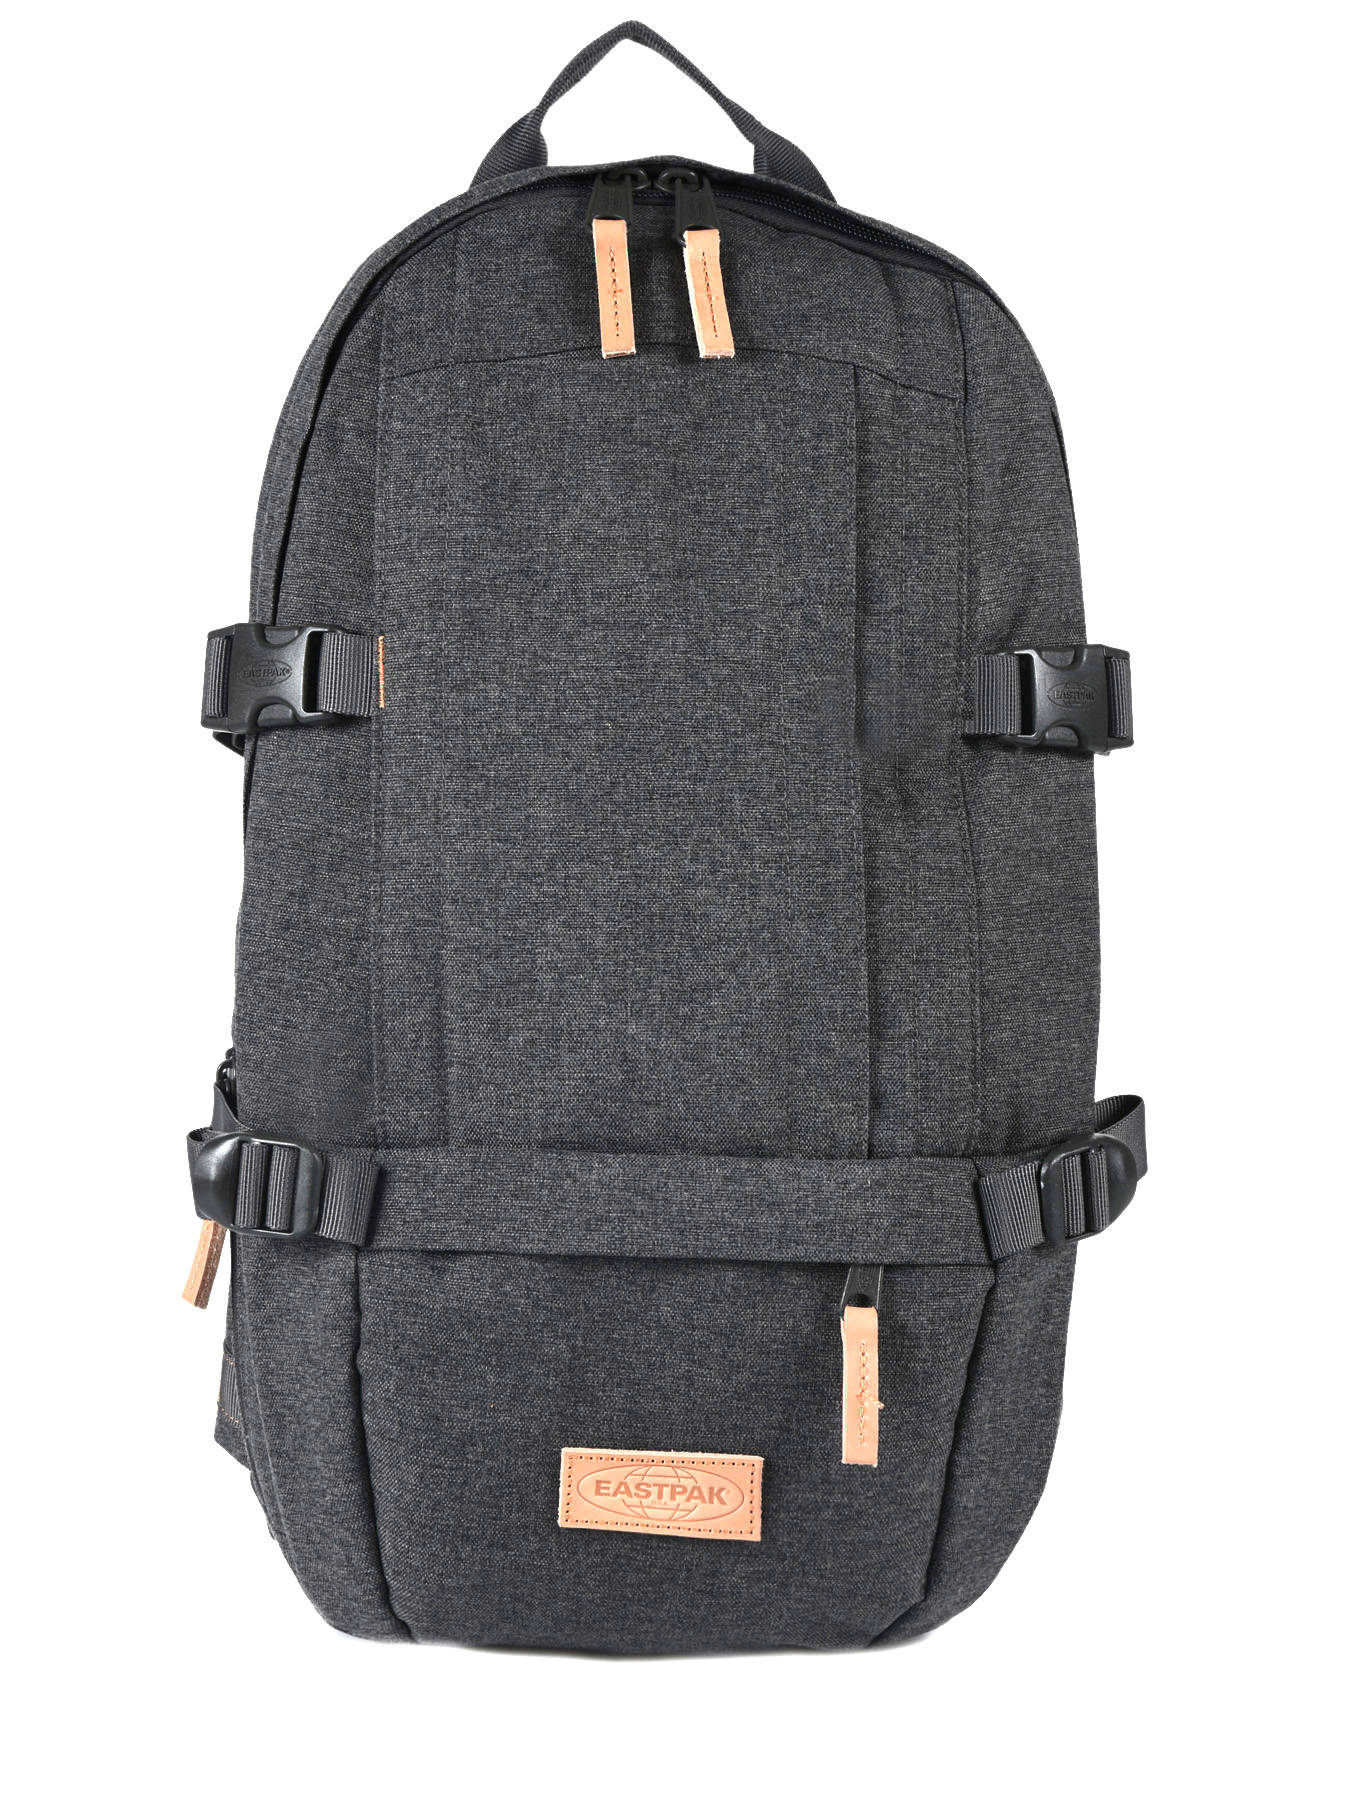 61b7fc64863a2 PC 1 15'' Sac compartiment business à dos EASTPAK pUqRZ